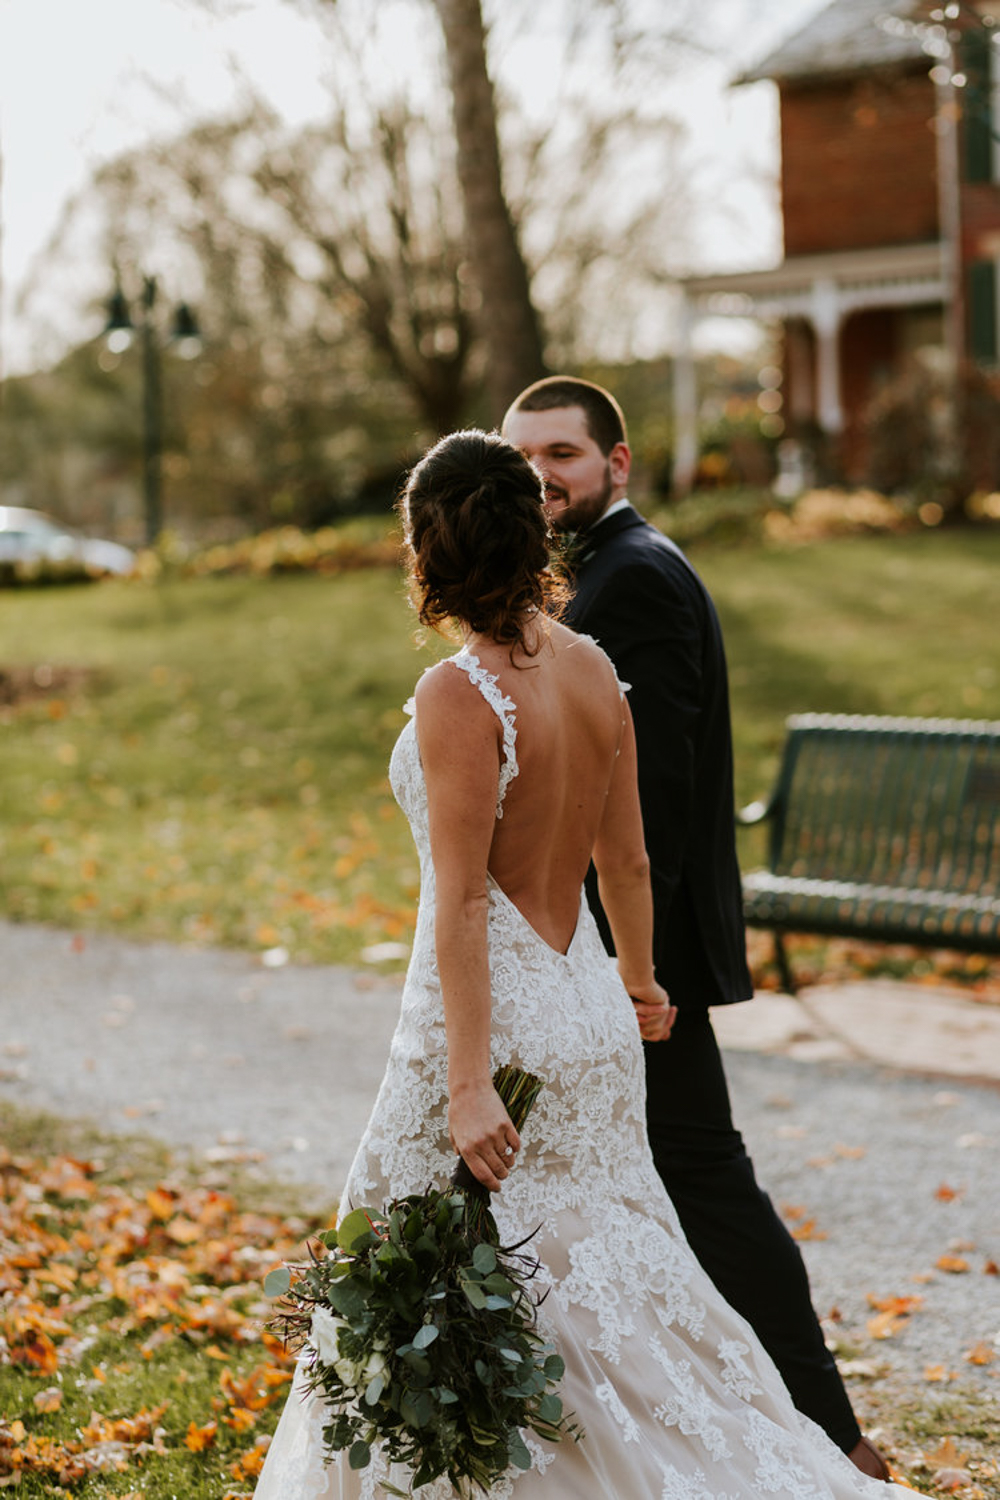 TaylorLaurenPhoto_Columbus_Ohio_Wedding_Engagement_Portrait_Photography-42.jpg